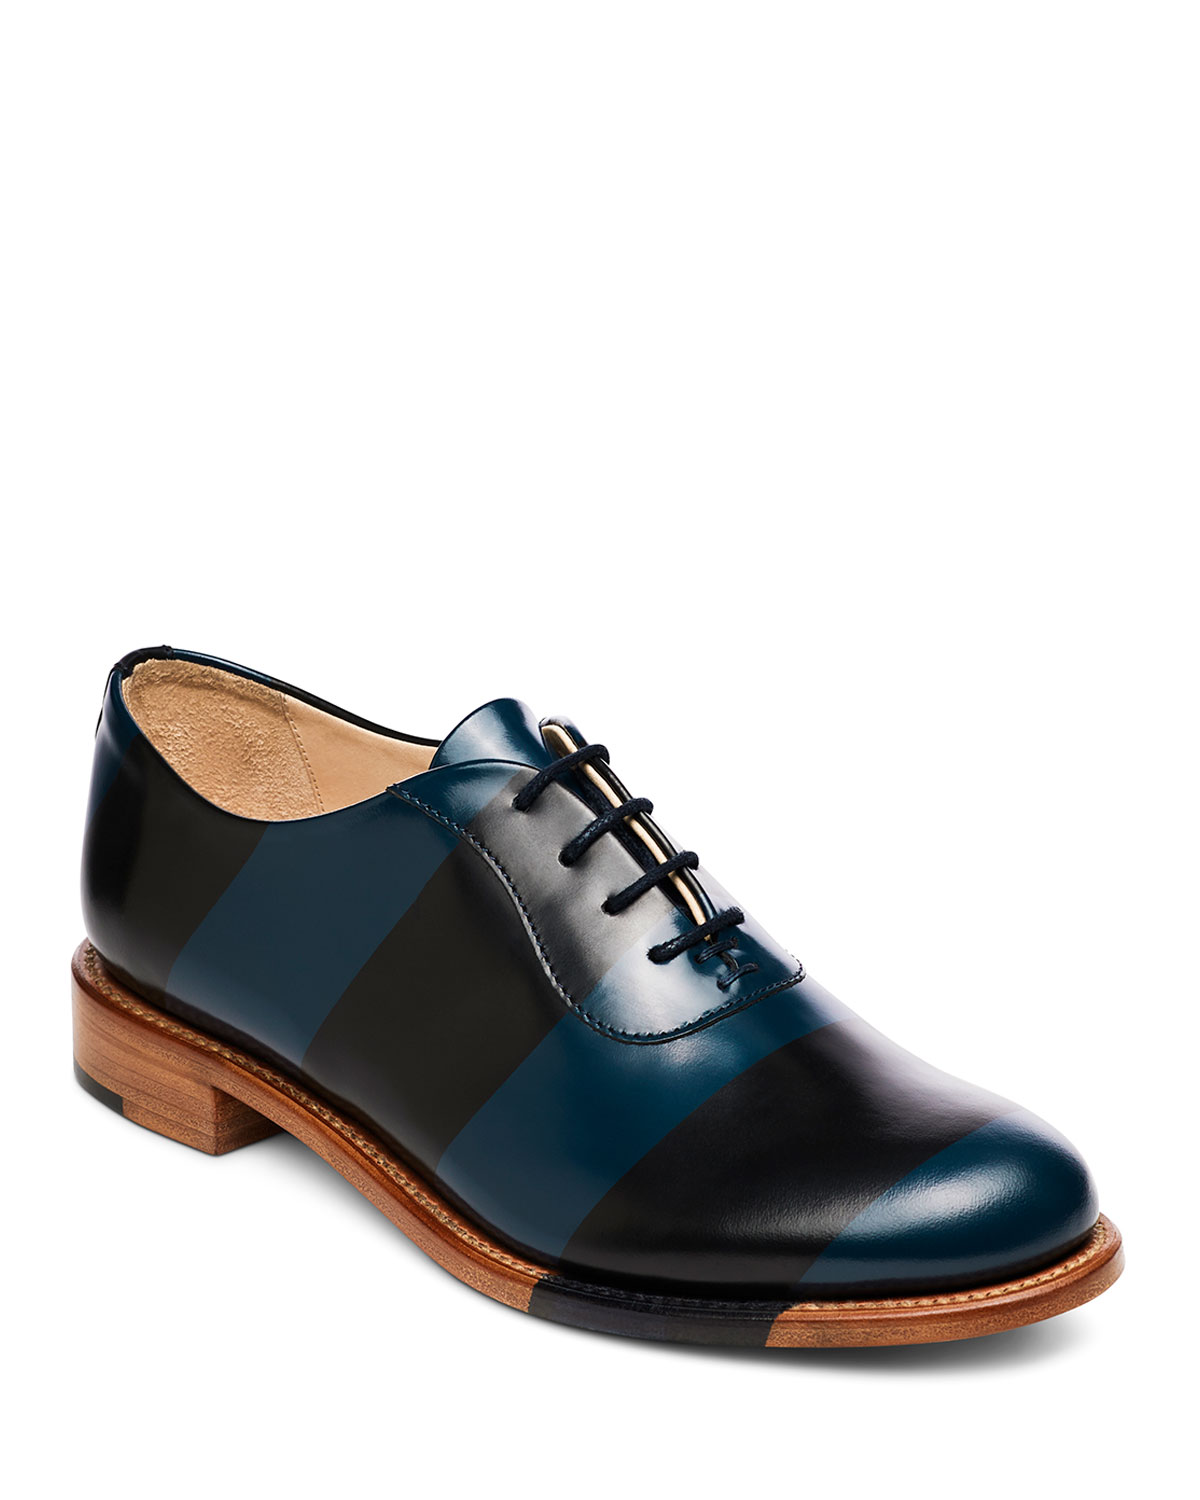 Mr. Smith Striped Leather Oxfords